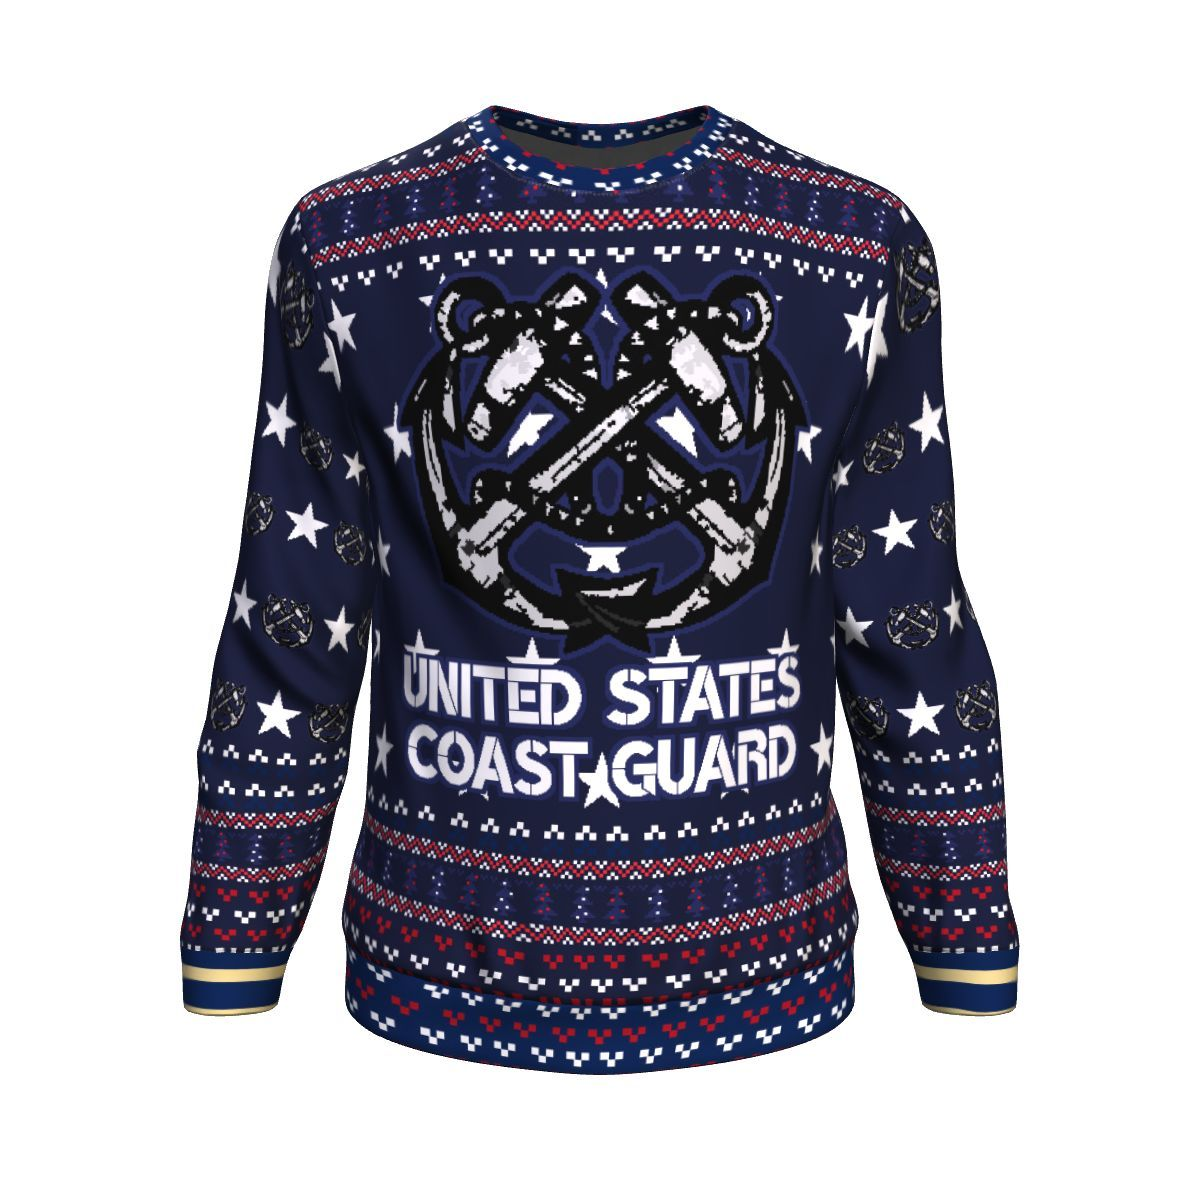 united states coast guard all over printed ugly christmas sweater 3